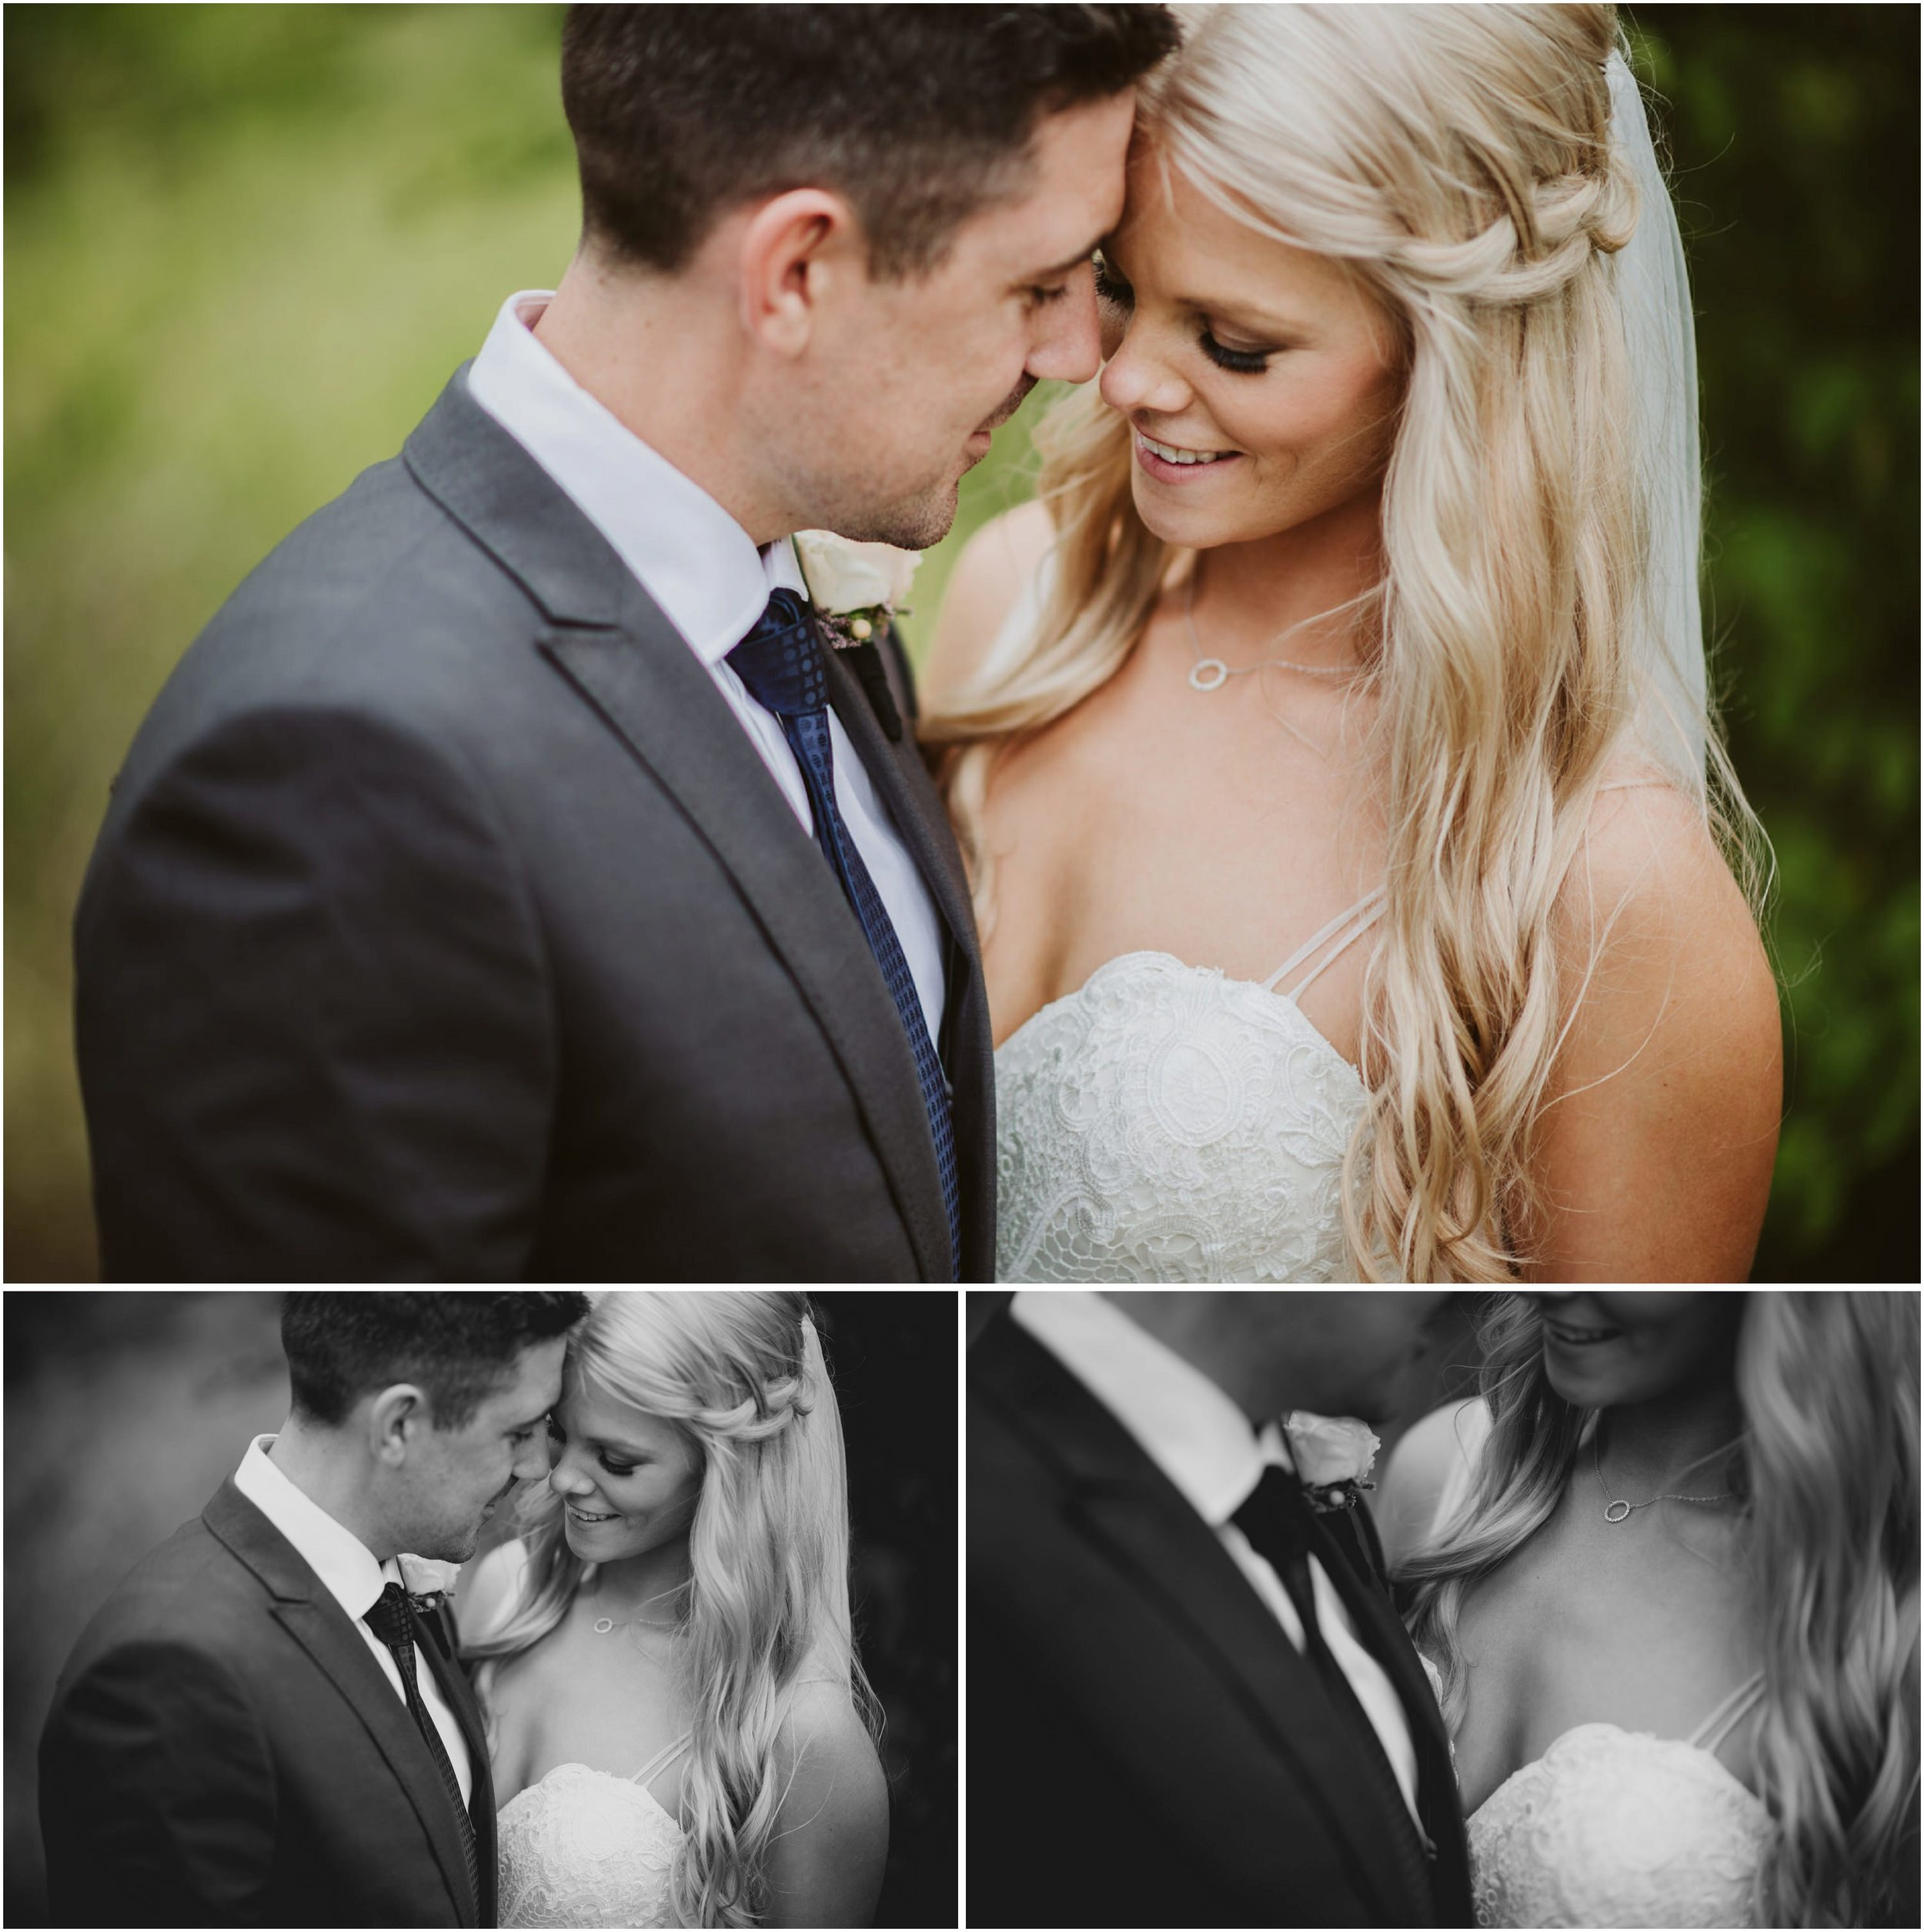 Bushbank Southern Highlands South Coast Wedding Jack Gilchrist Photography Sydney_0325.jpg